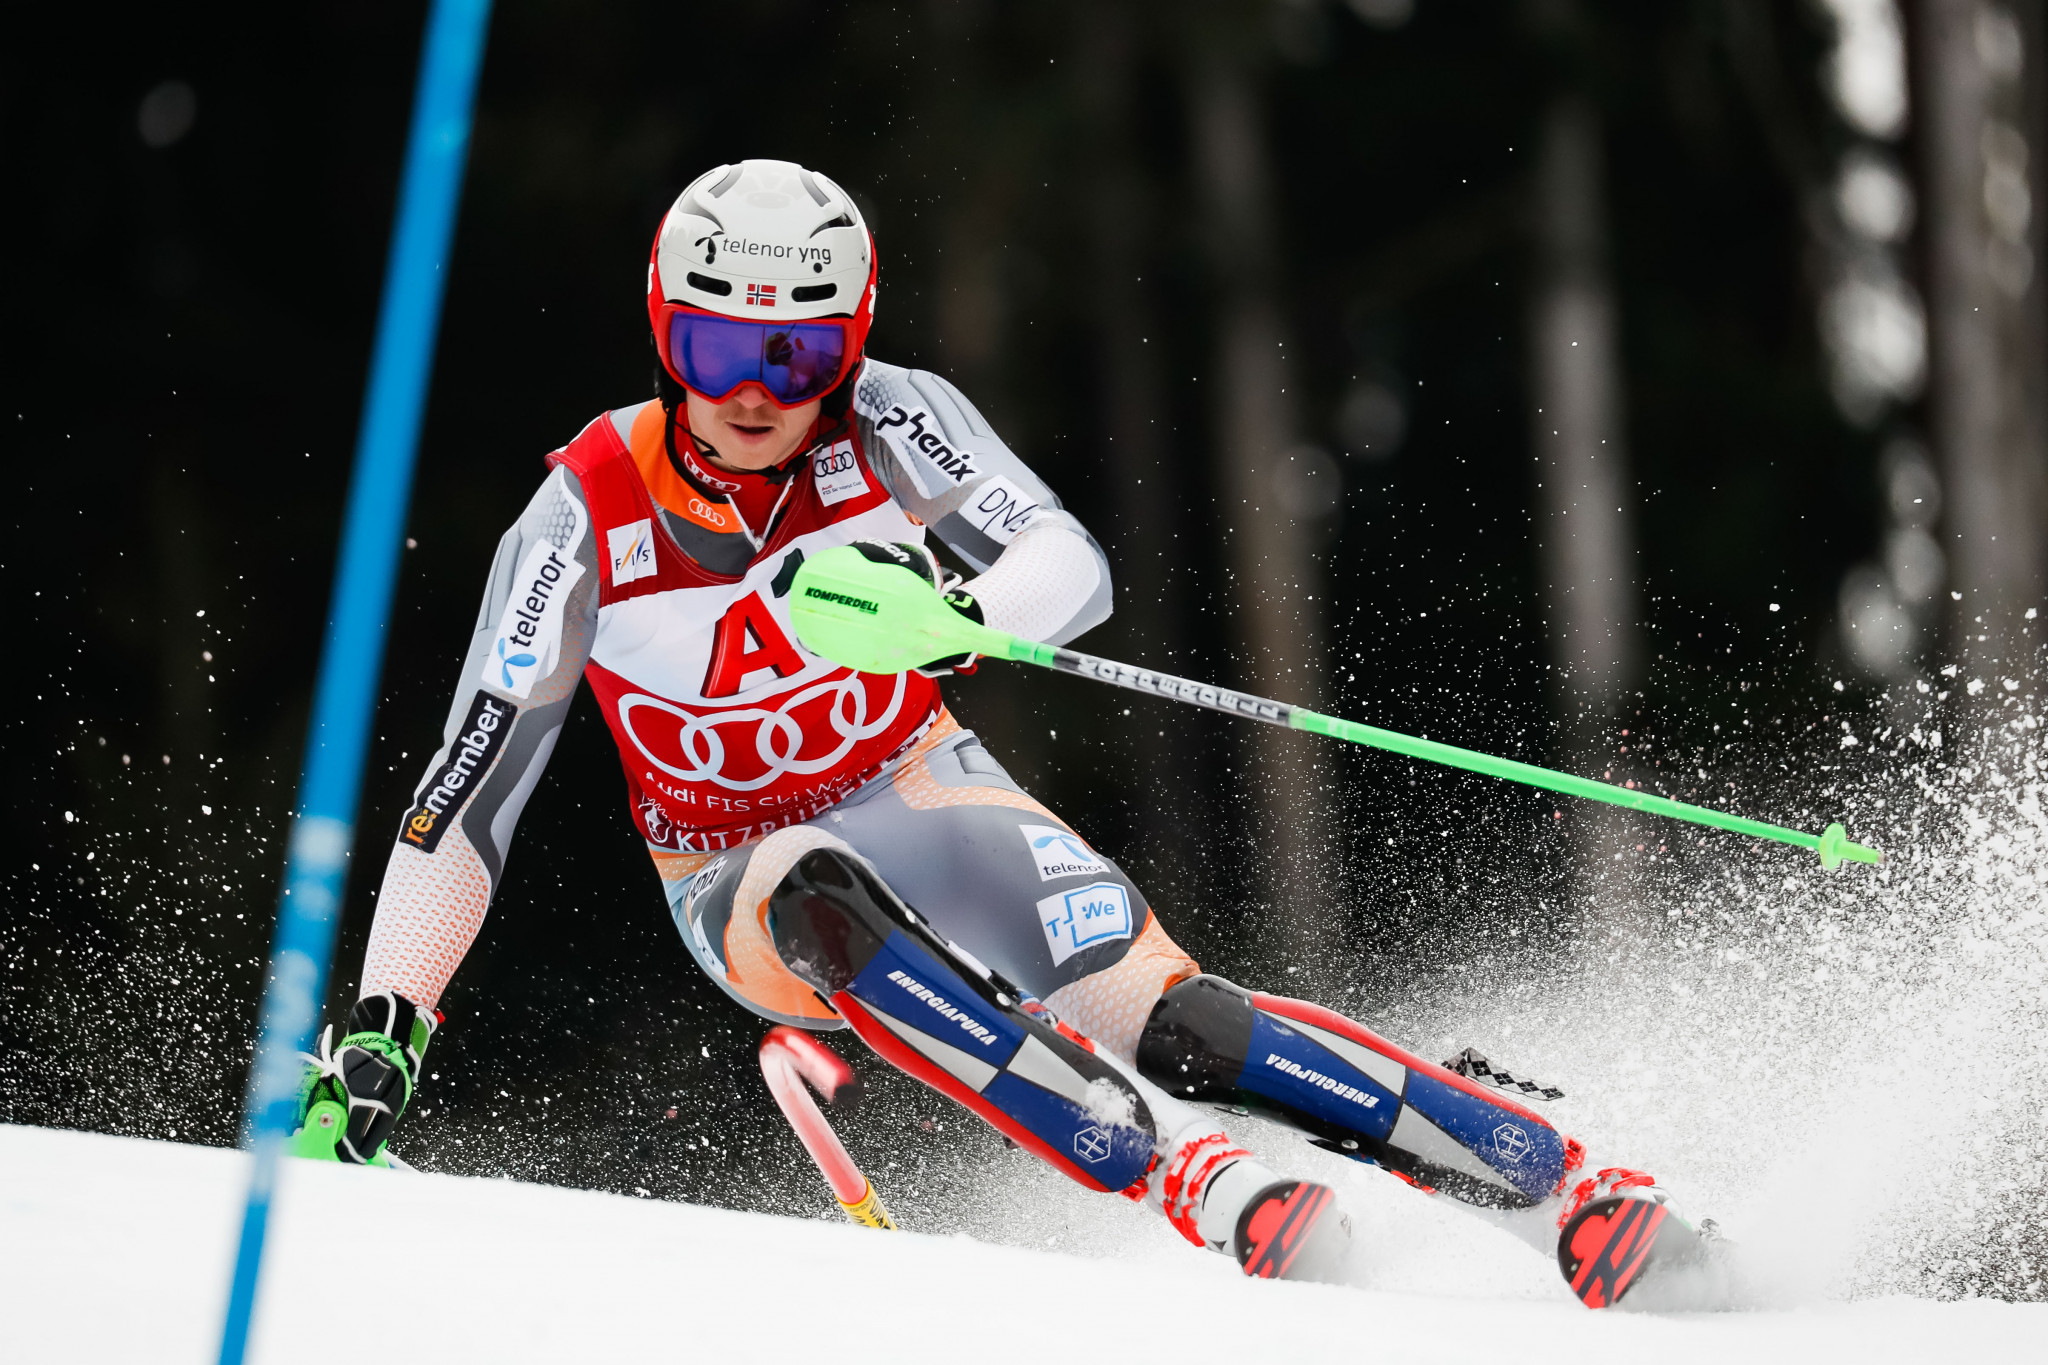 Schladming to host men's slalom event as FIS Alpine Skiing World Cup continues